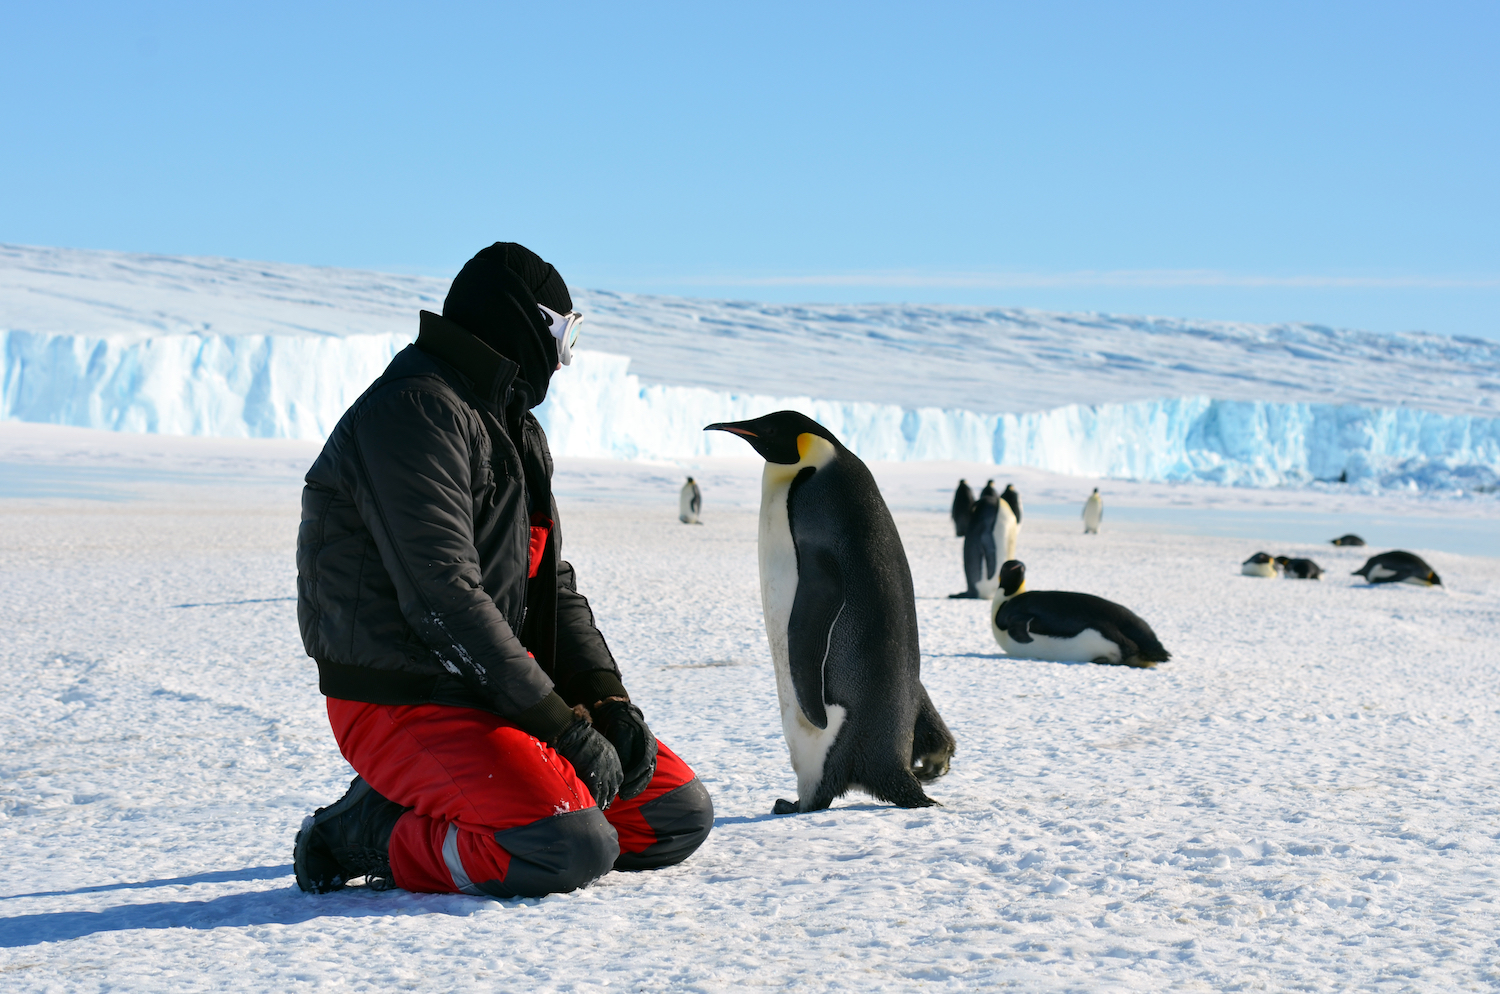 Antarctica: The Southernmost Continent | Live Science